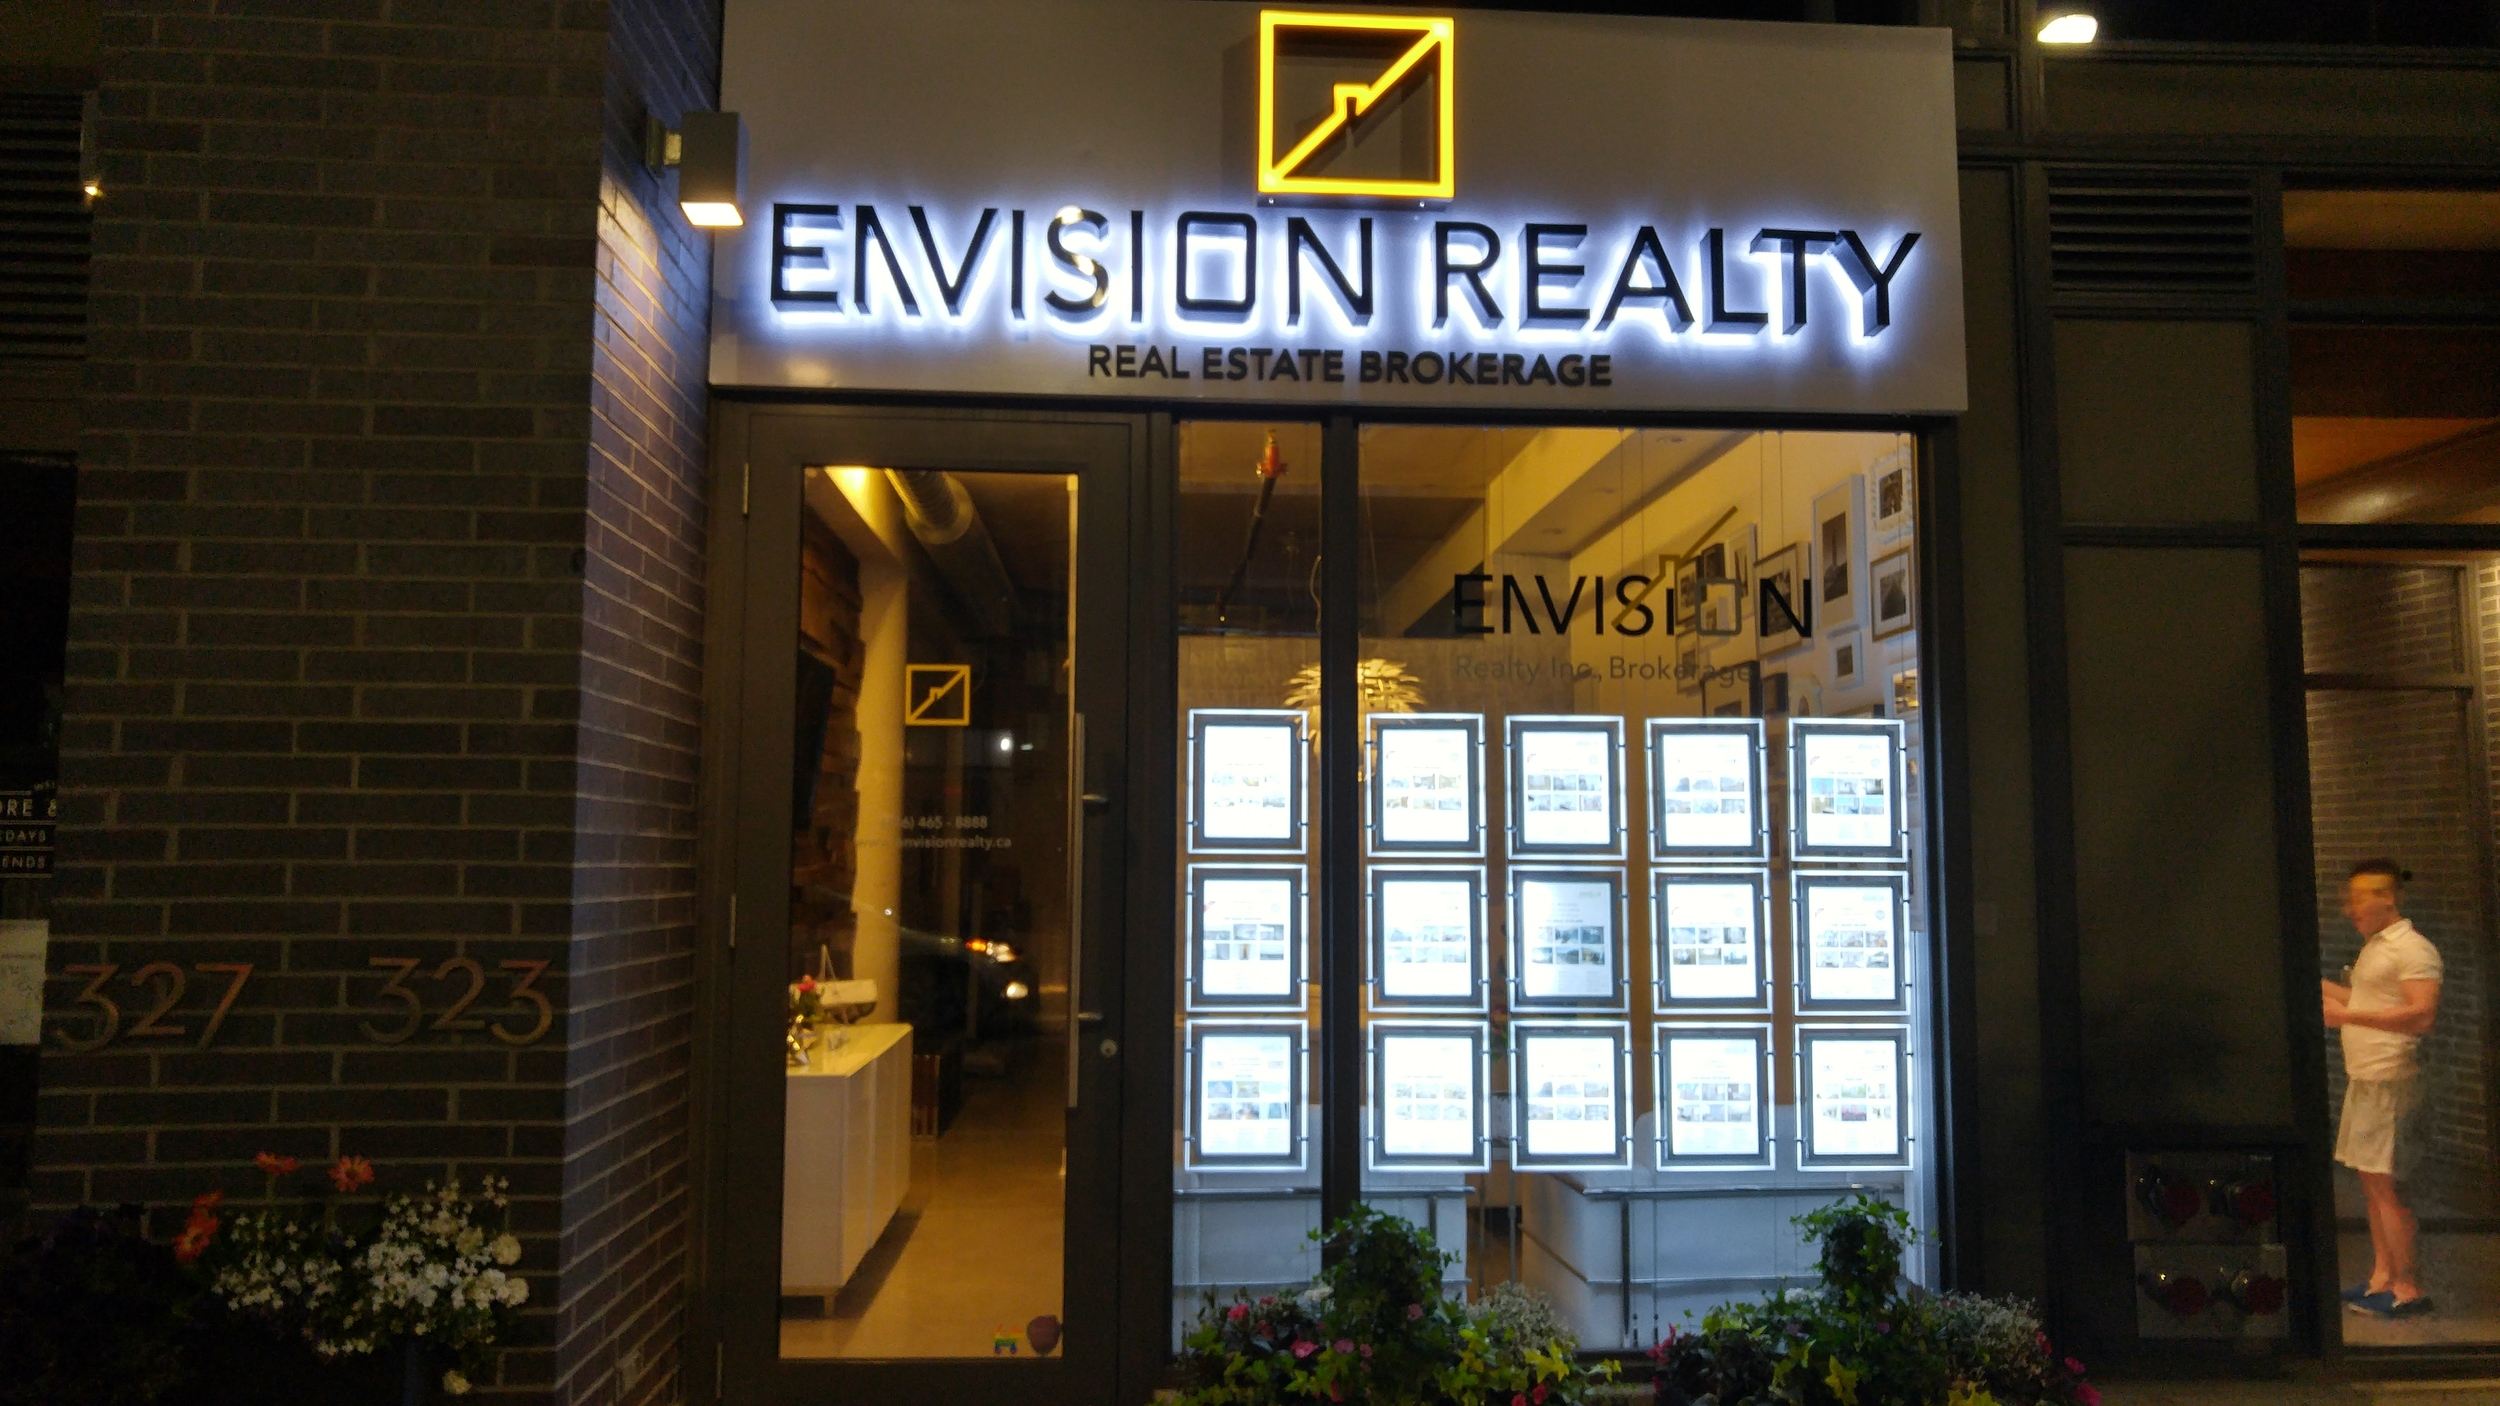 Envision Realty Sign | Graphic Design JNKM.jpg